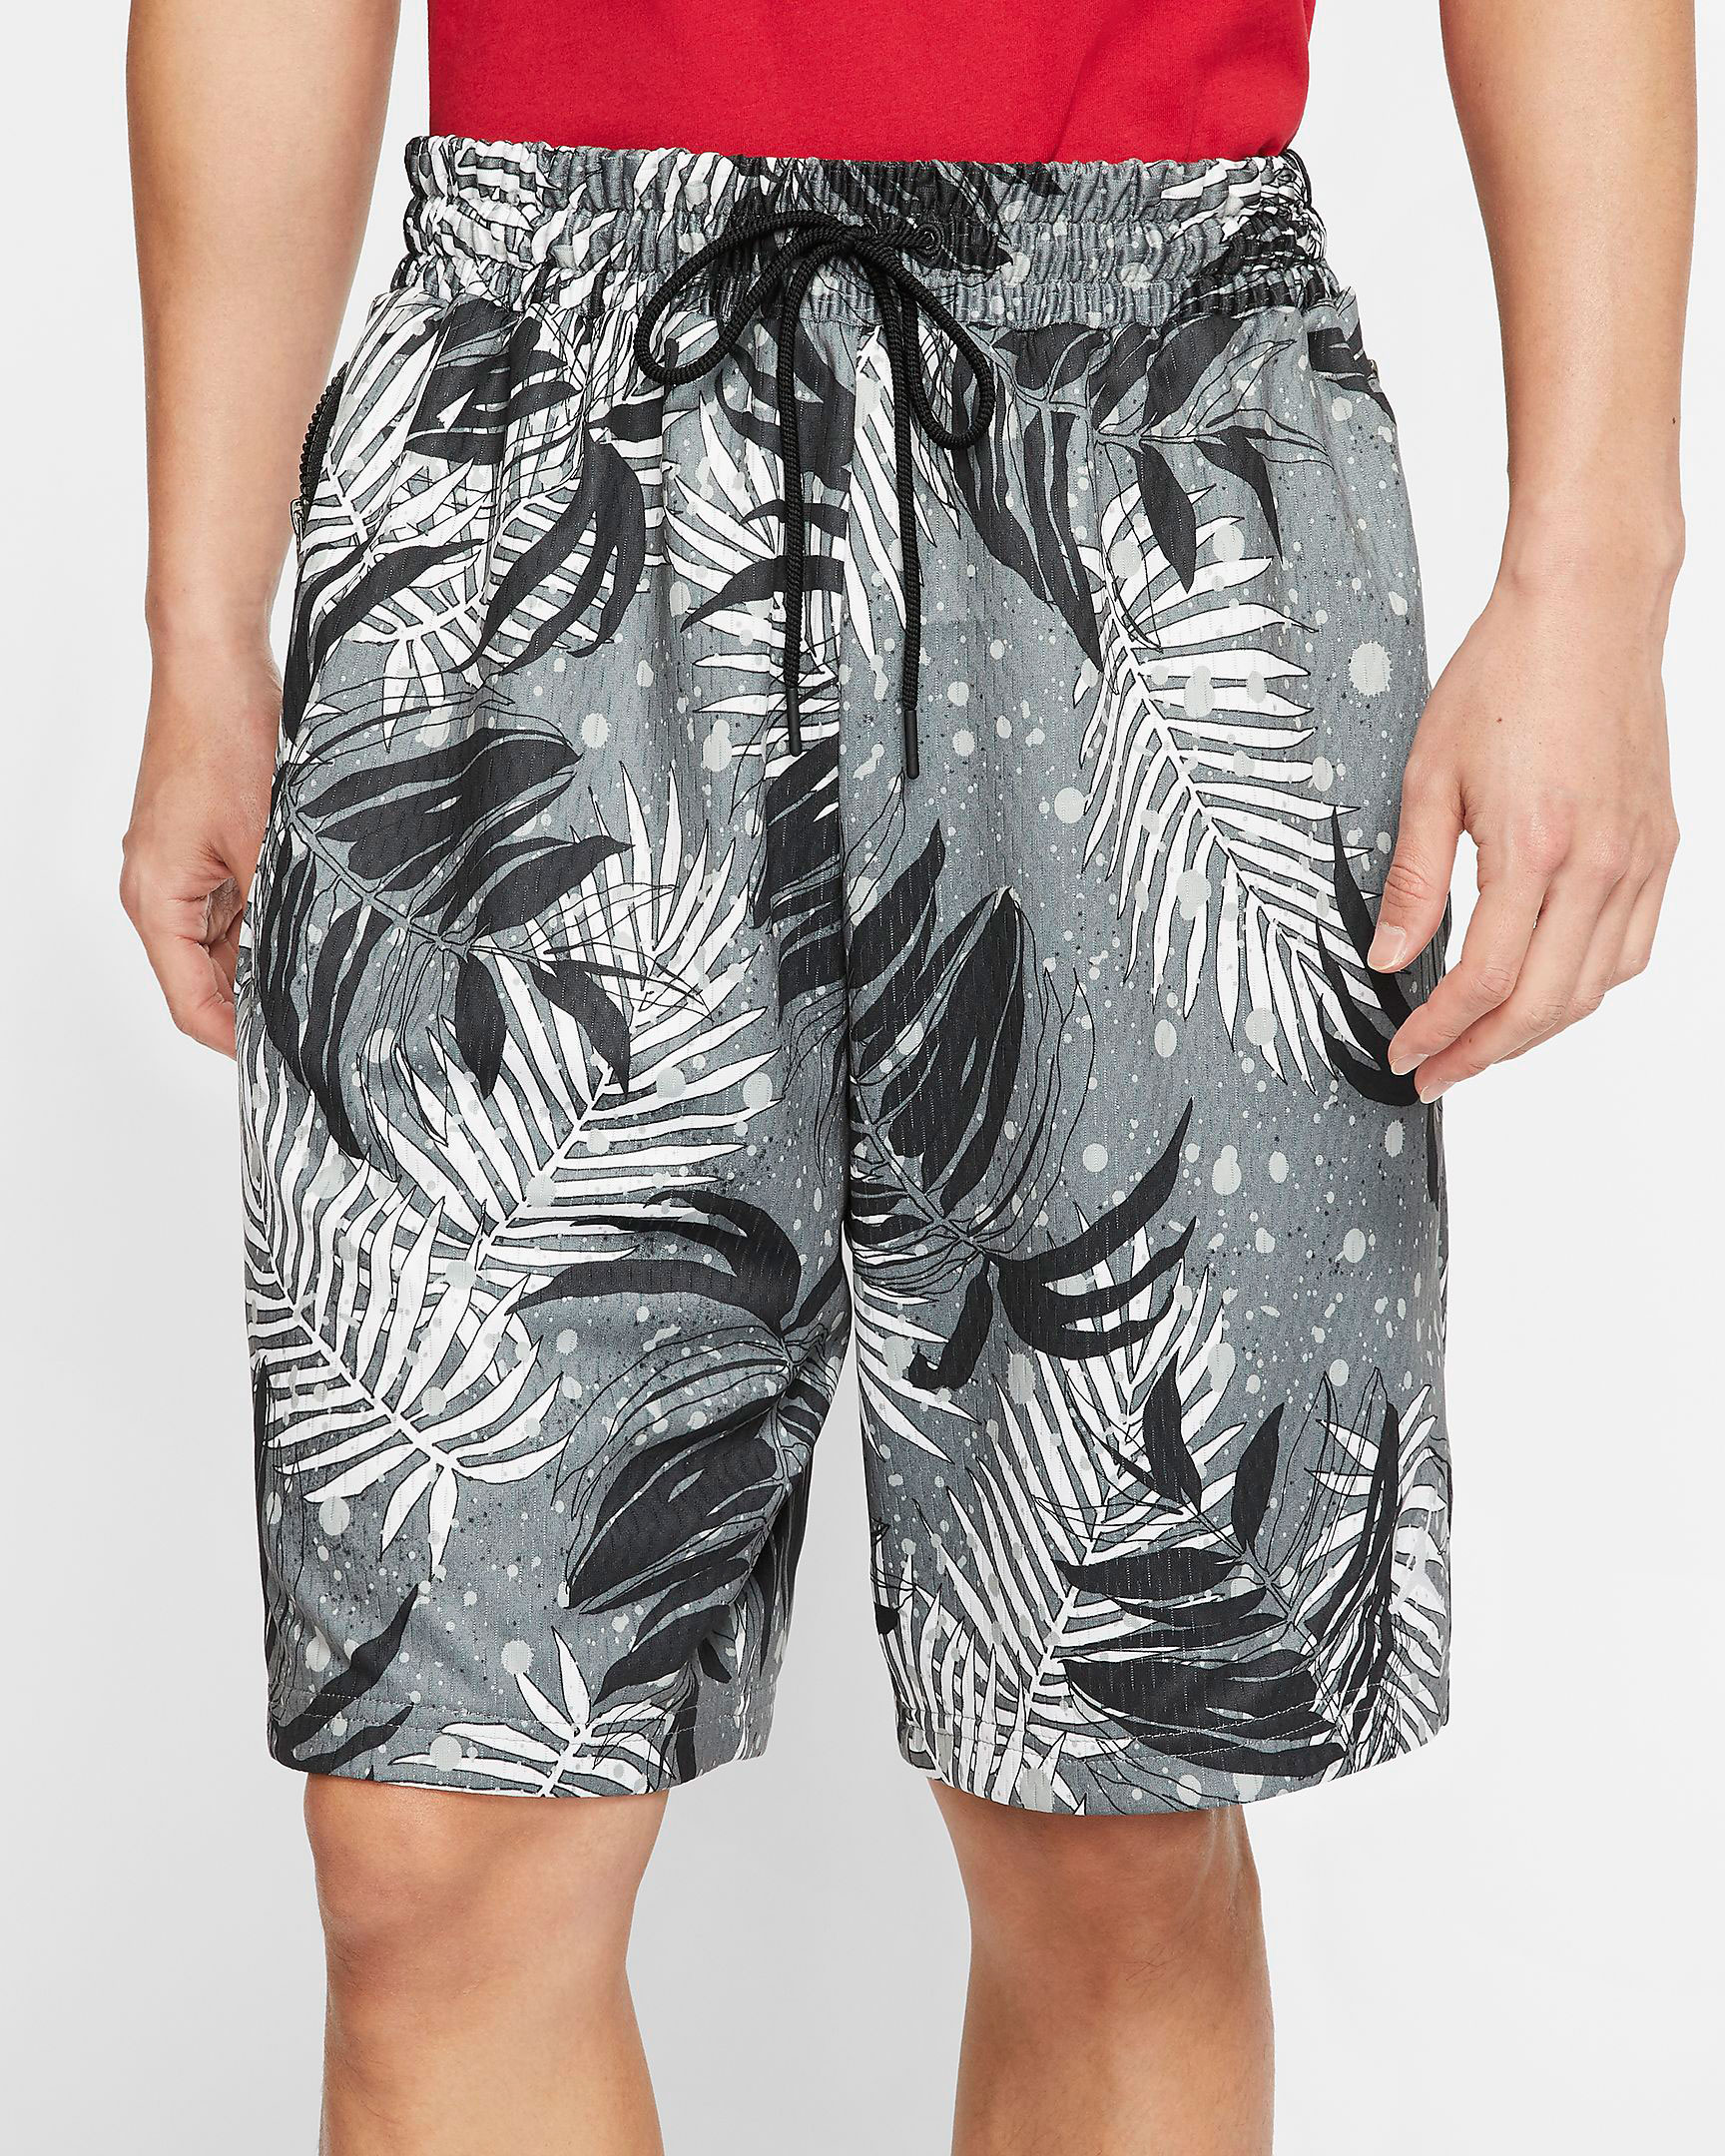 jordan-poolside-floral-shorts-black-grey